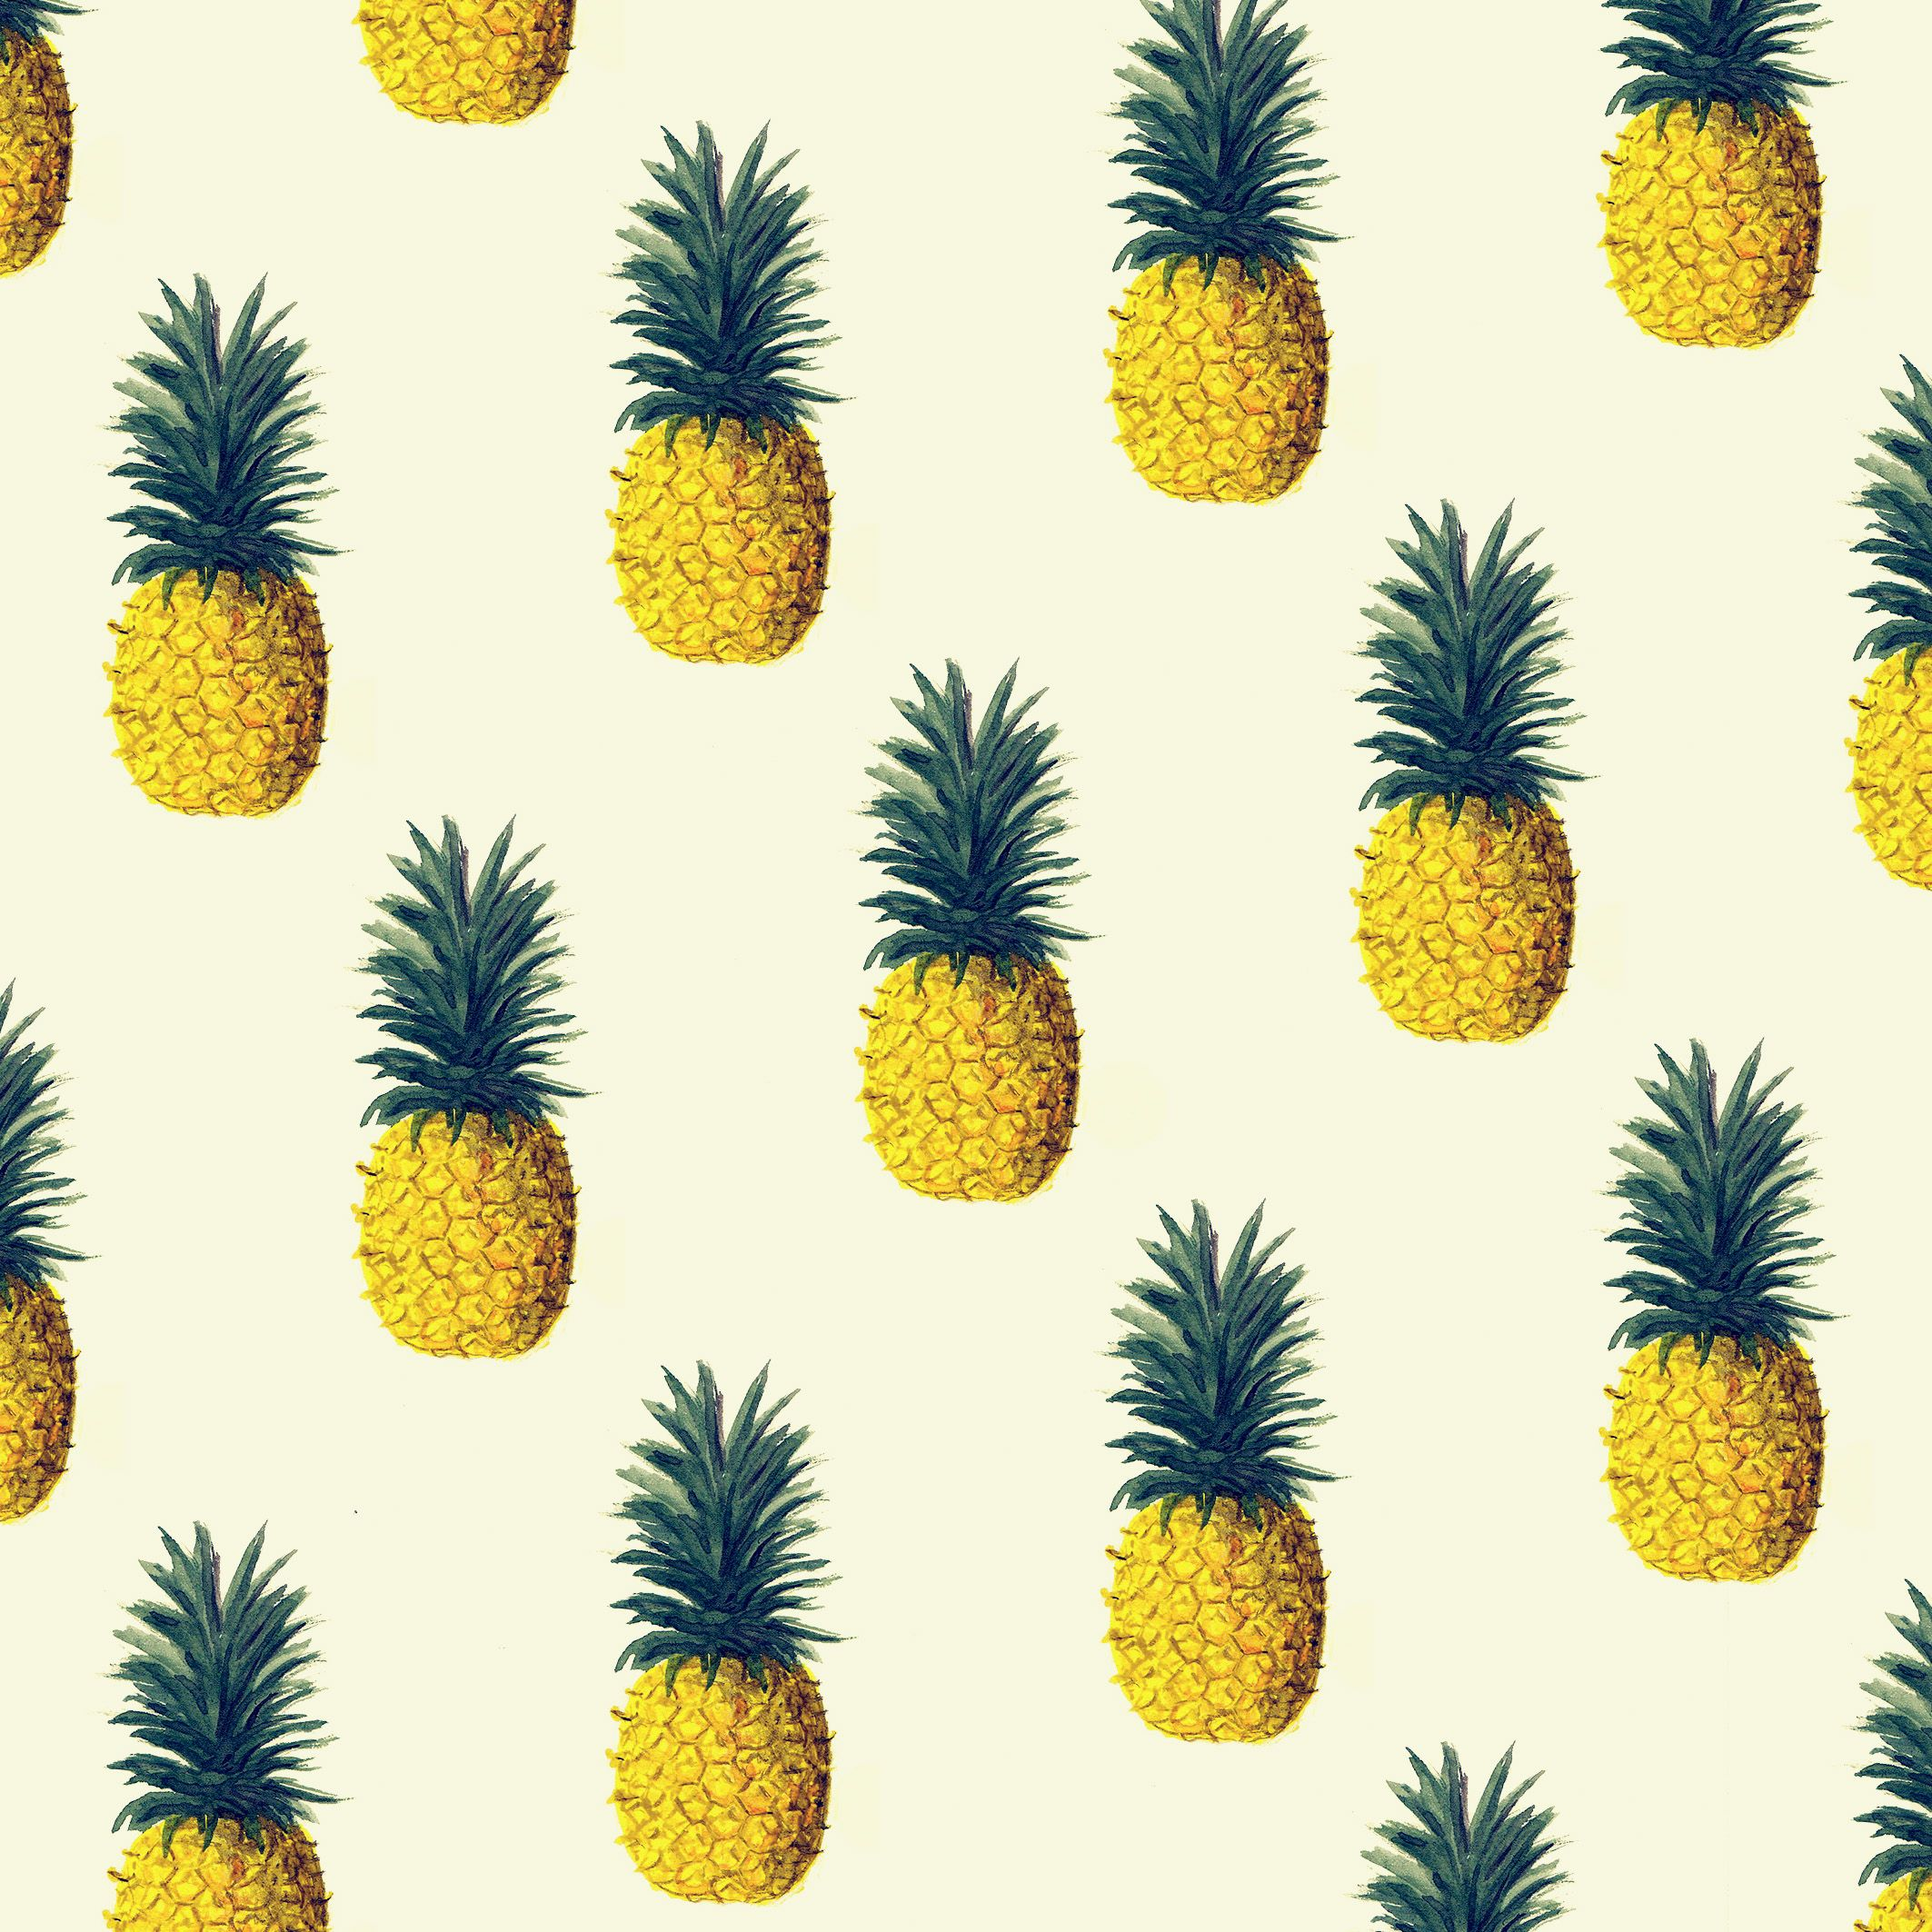 Pineapple Pattern — Vanessa Vanderhaven class ideas